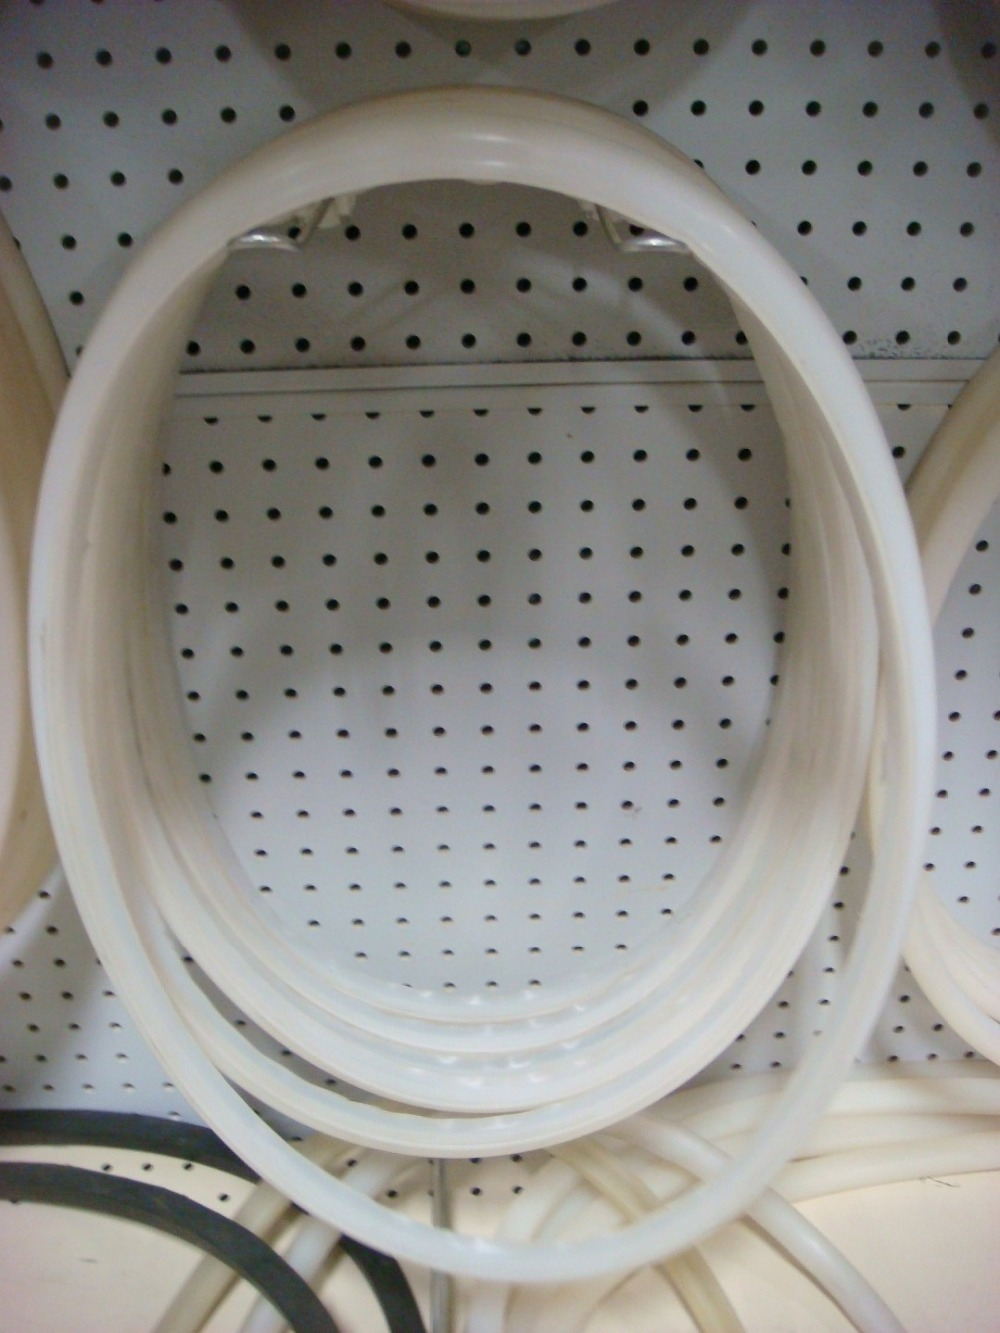 Free Shipping Gasket Silicone 300mm Round Pressure Manway 10inch Manhole Cover Replacement Sealing free shipping silicone gasket for 350mm round pressure manway 8x8mm